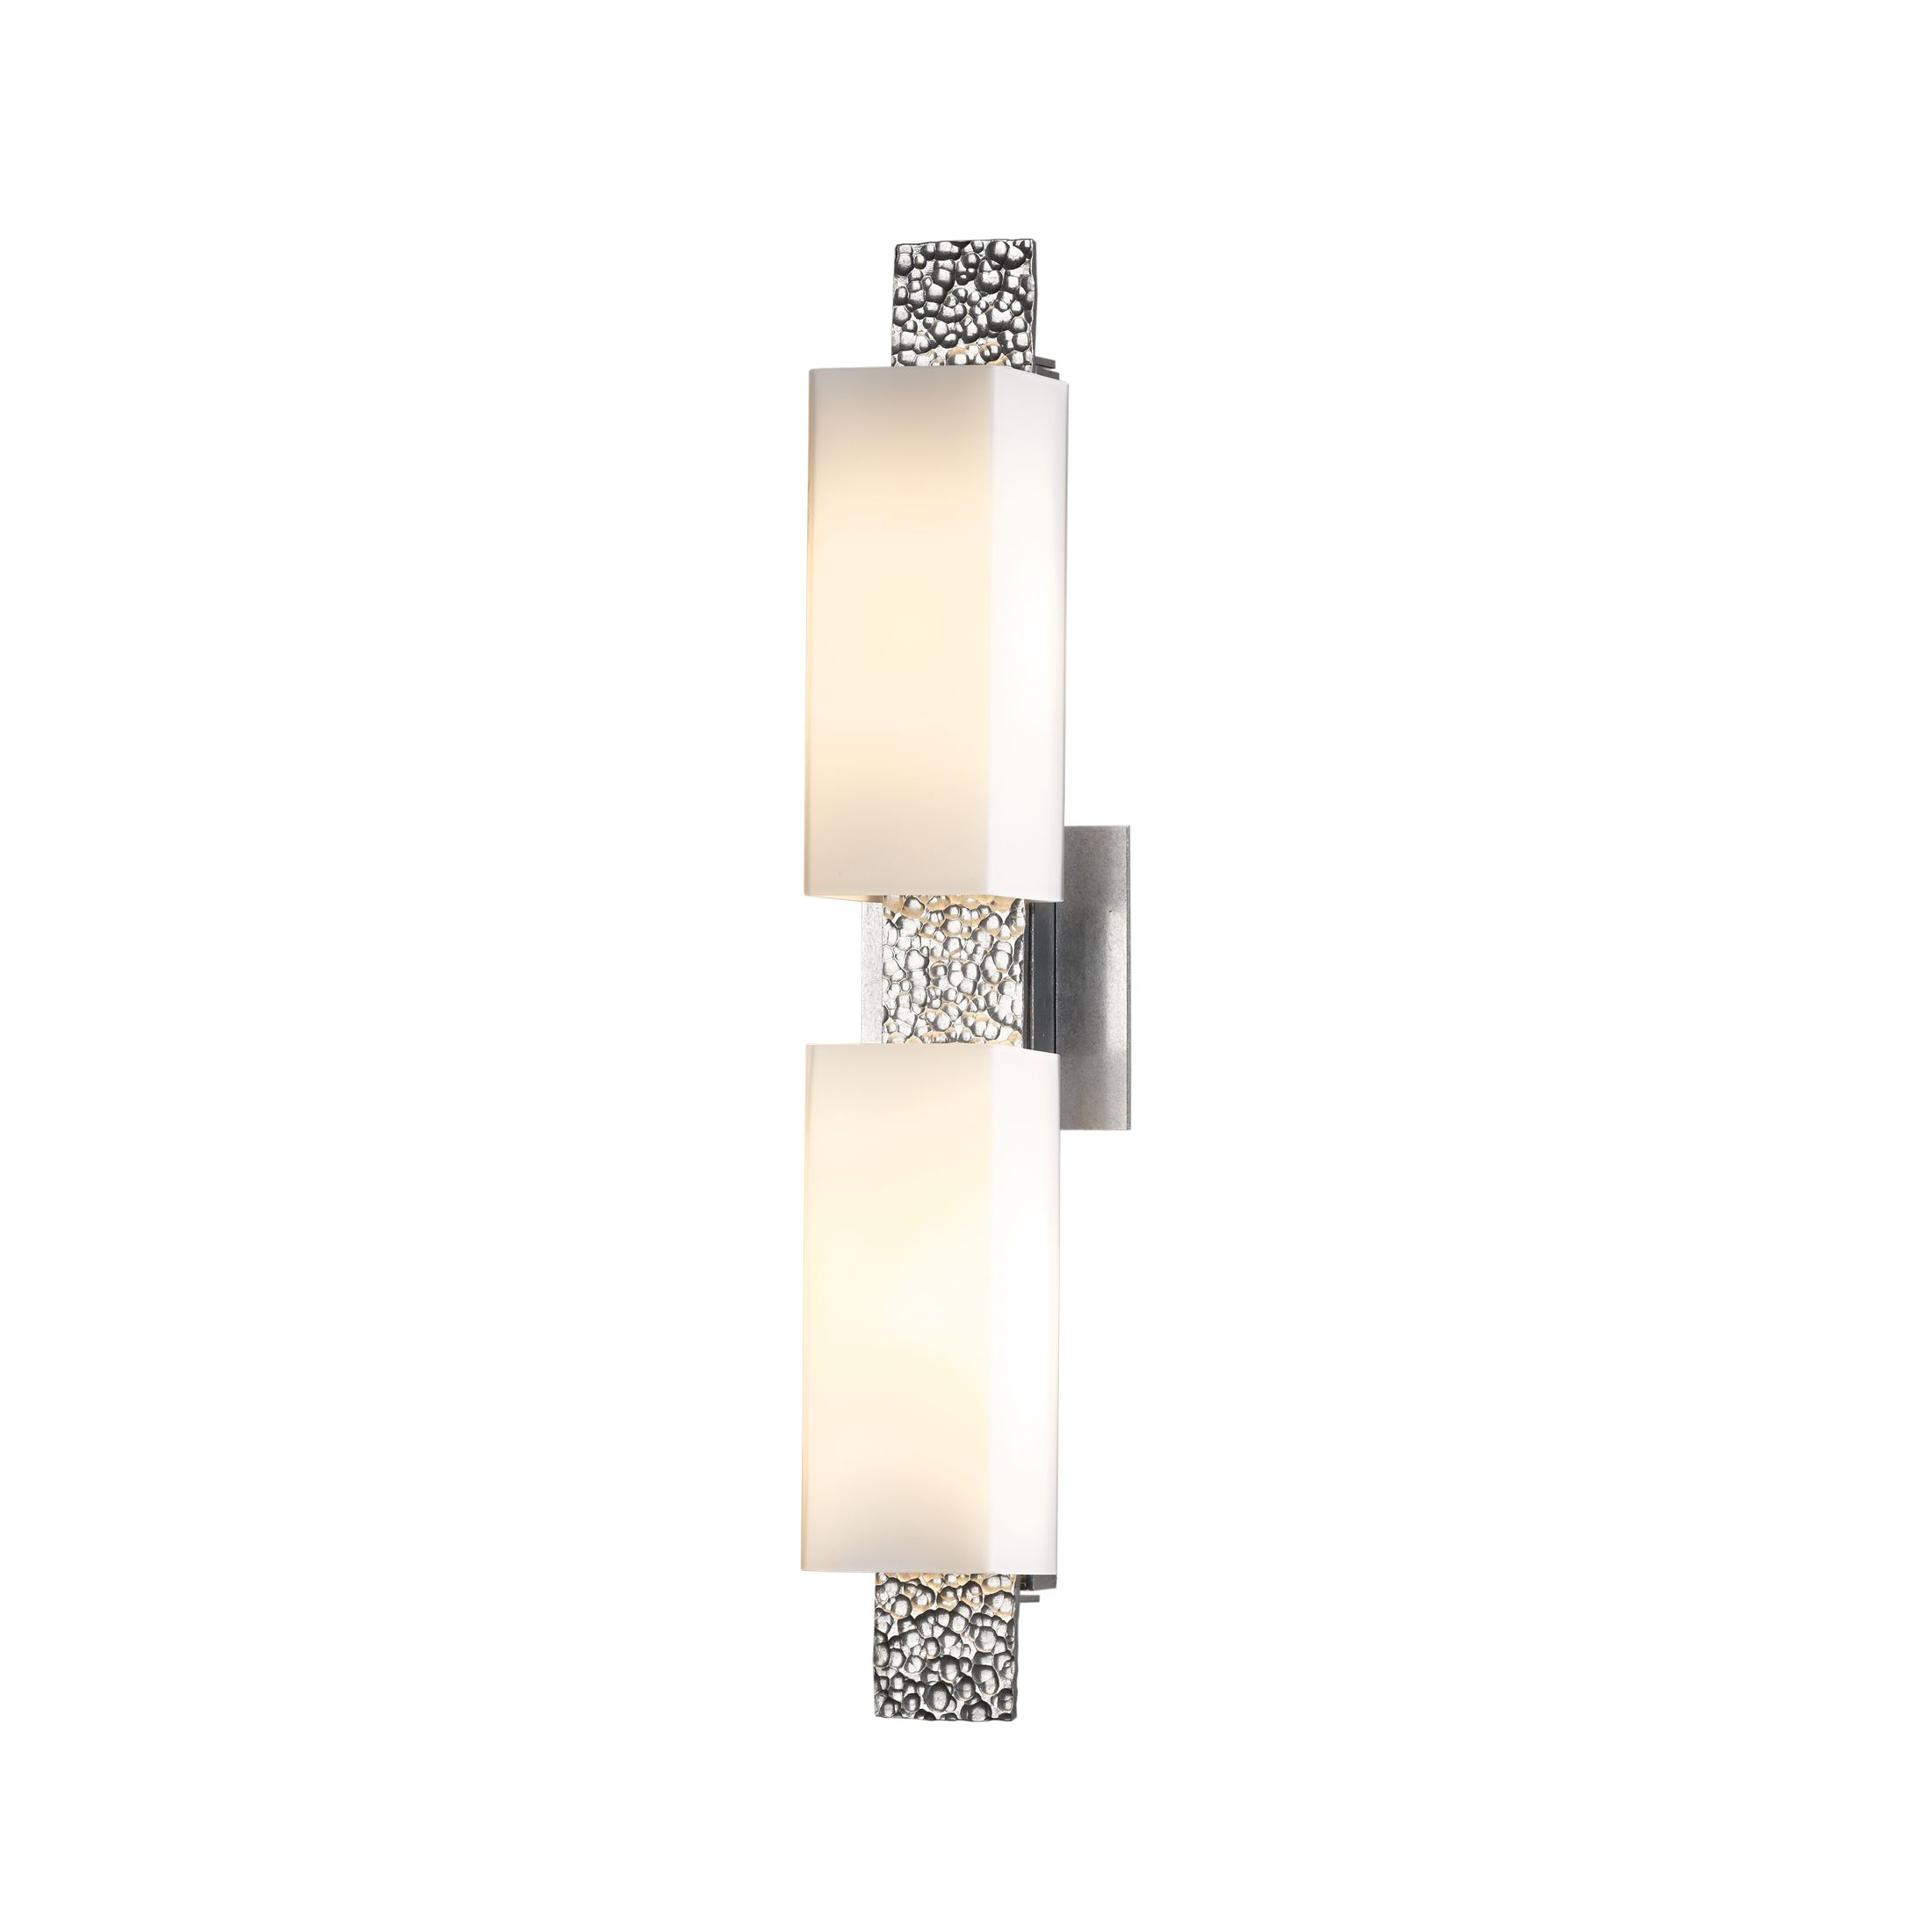 Hubbardton Forge Oculus: Collage Small LED Sconce